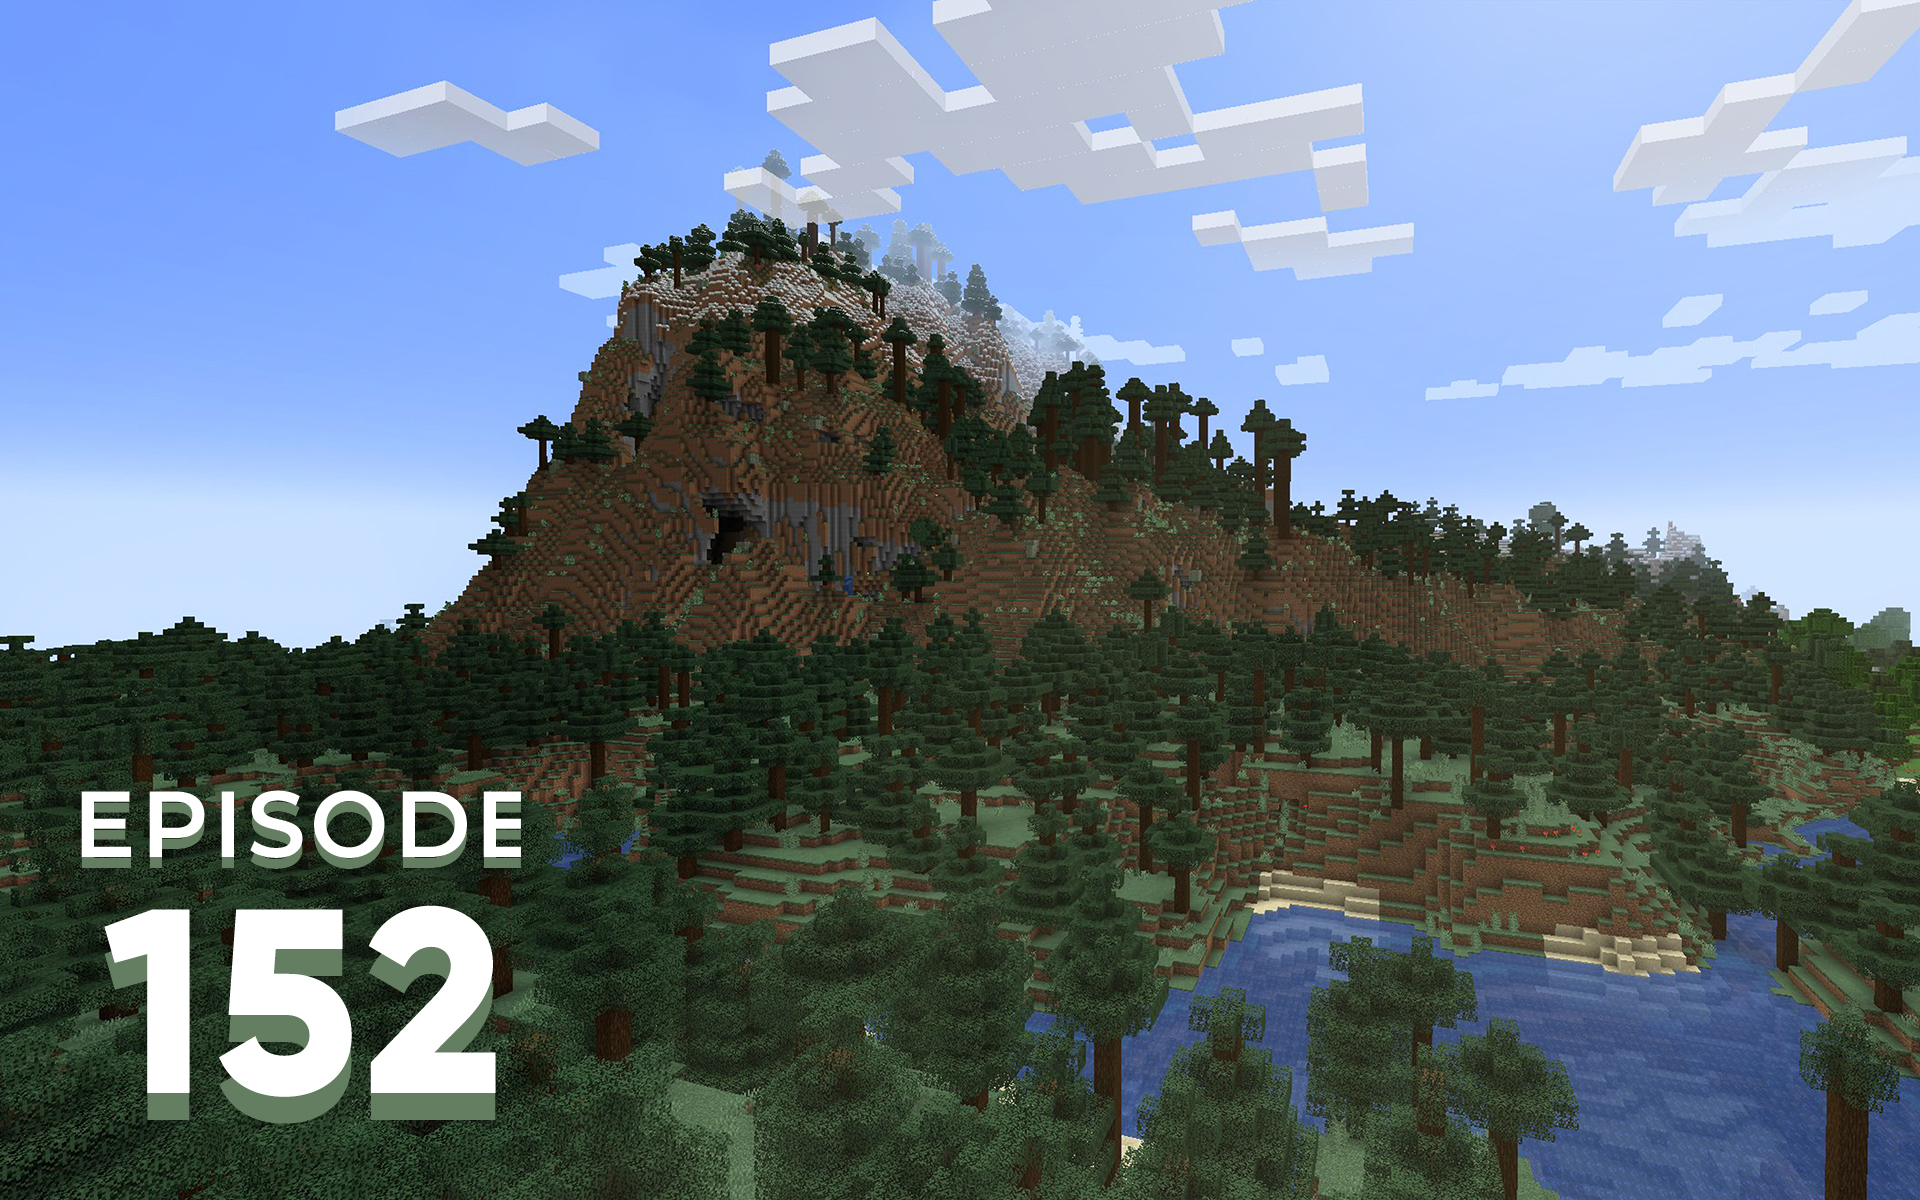 The Spawn Chunks 152: The Hills Are Alive With Henrik Kniberg